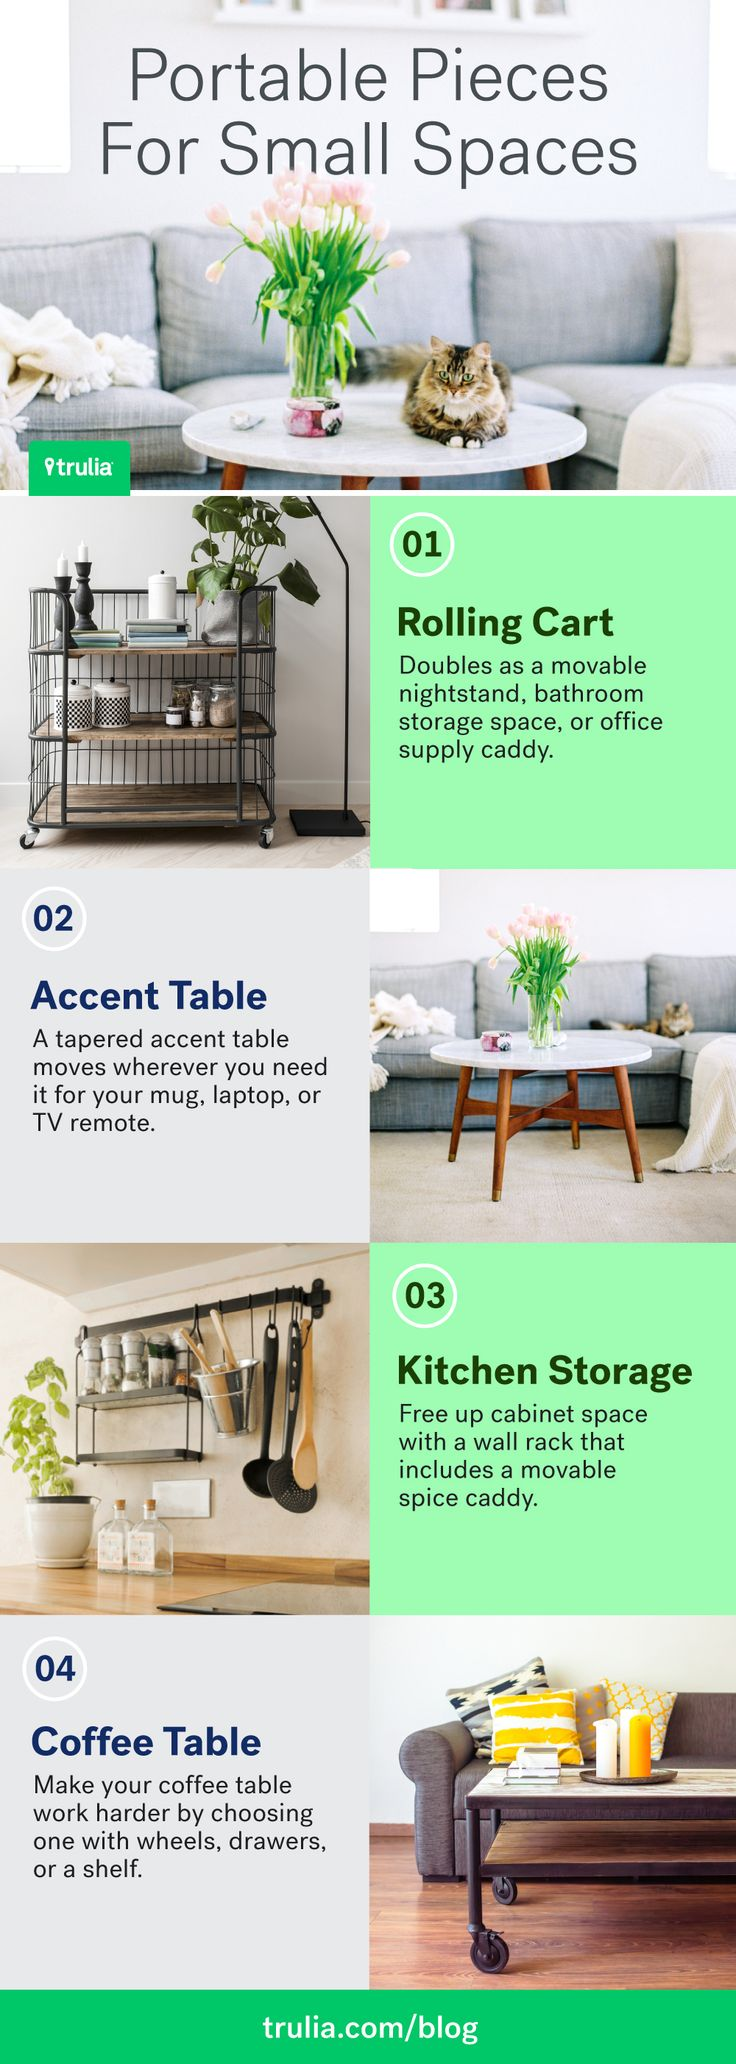 17 best images about apartment ideas on pinterest purple hydrangeas purple home and purple - Compact cribs small spaces model ...